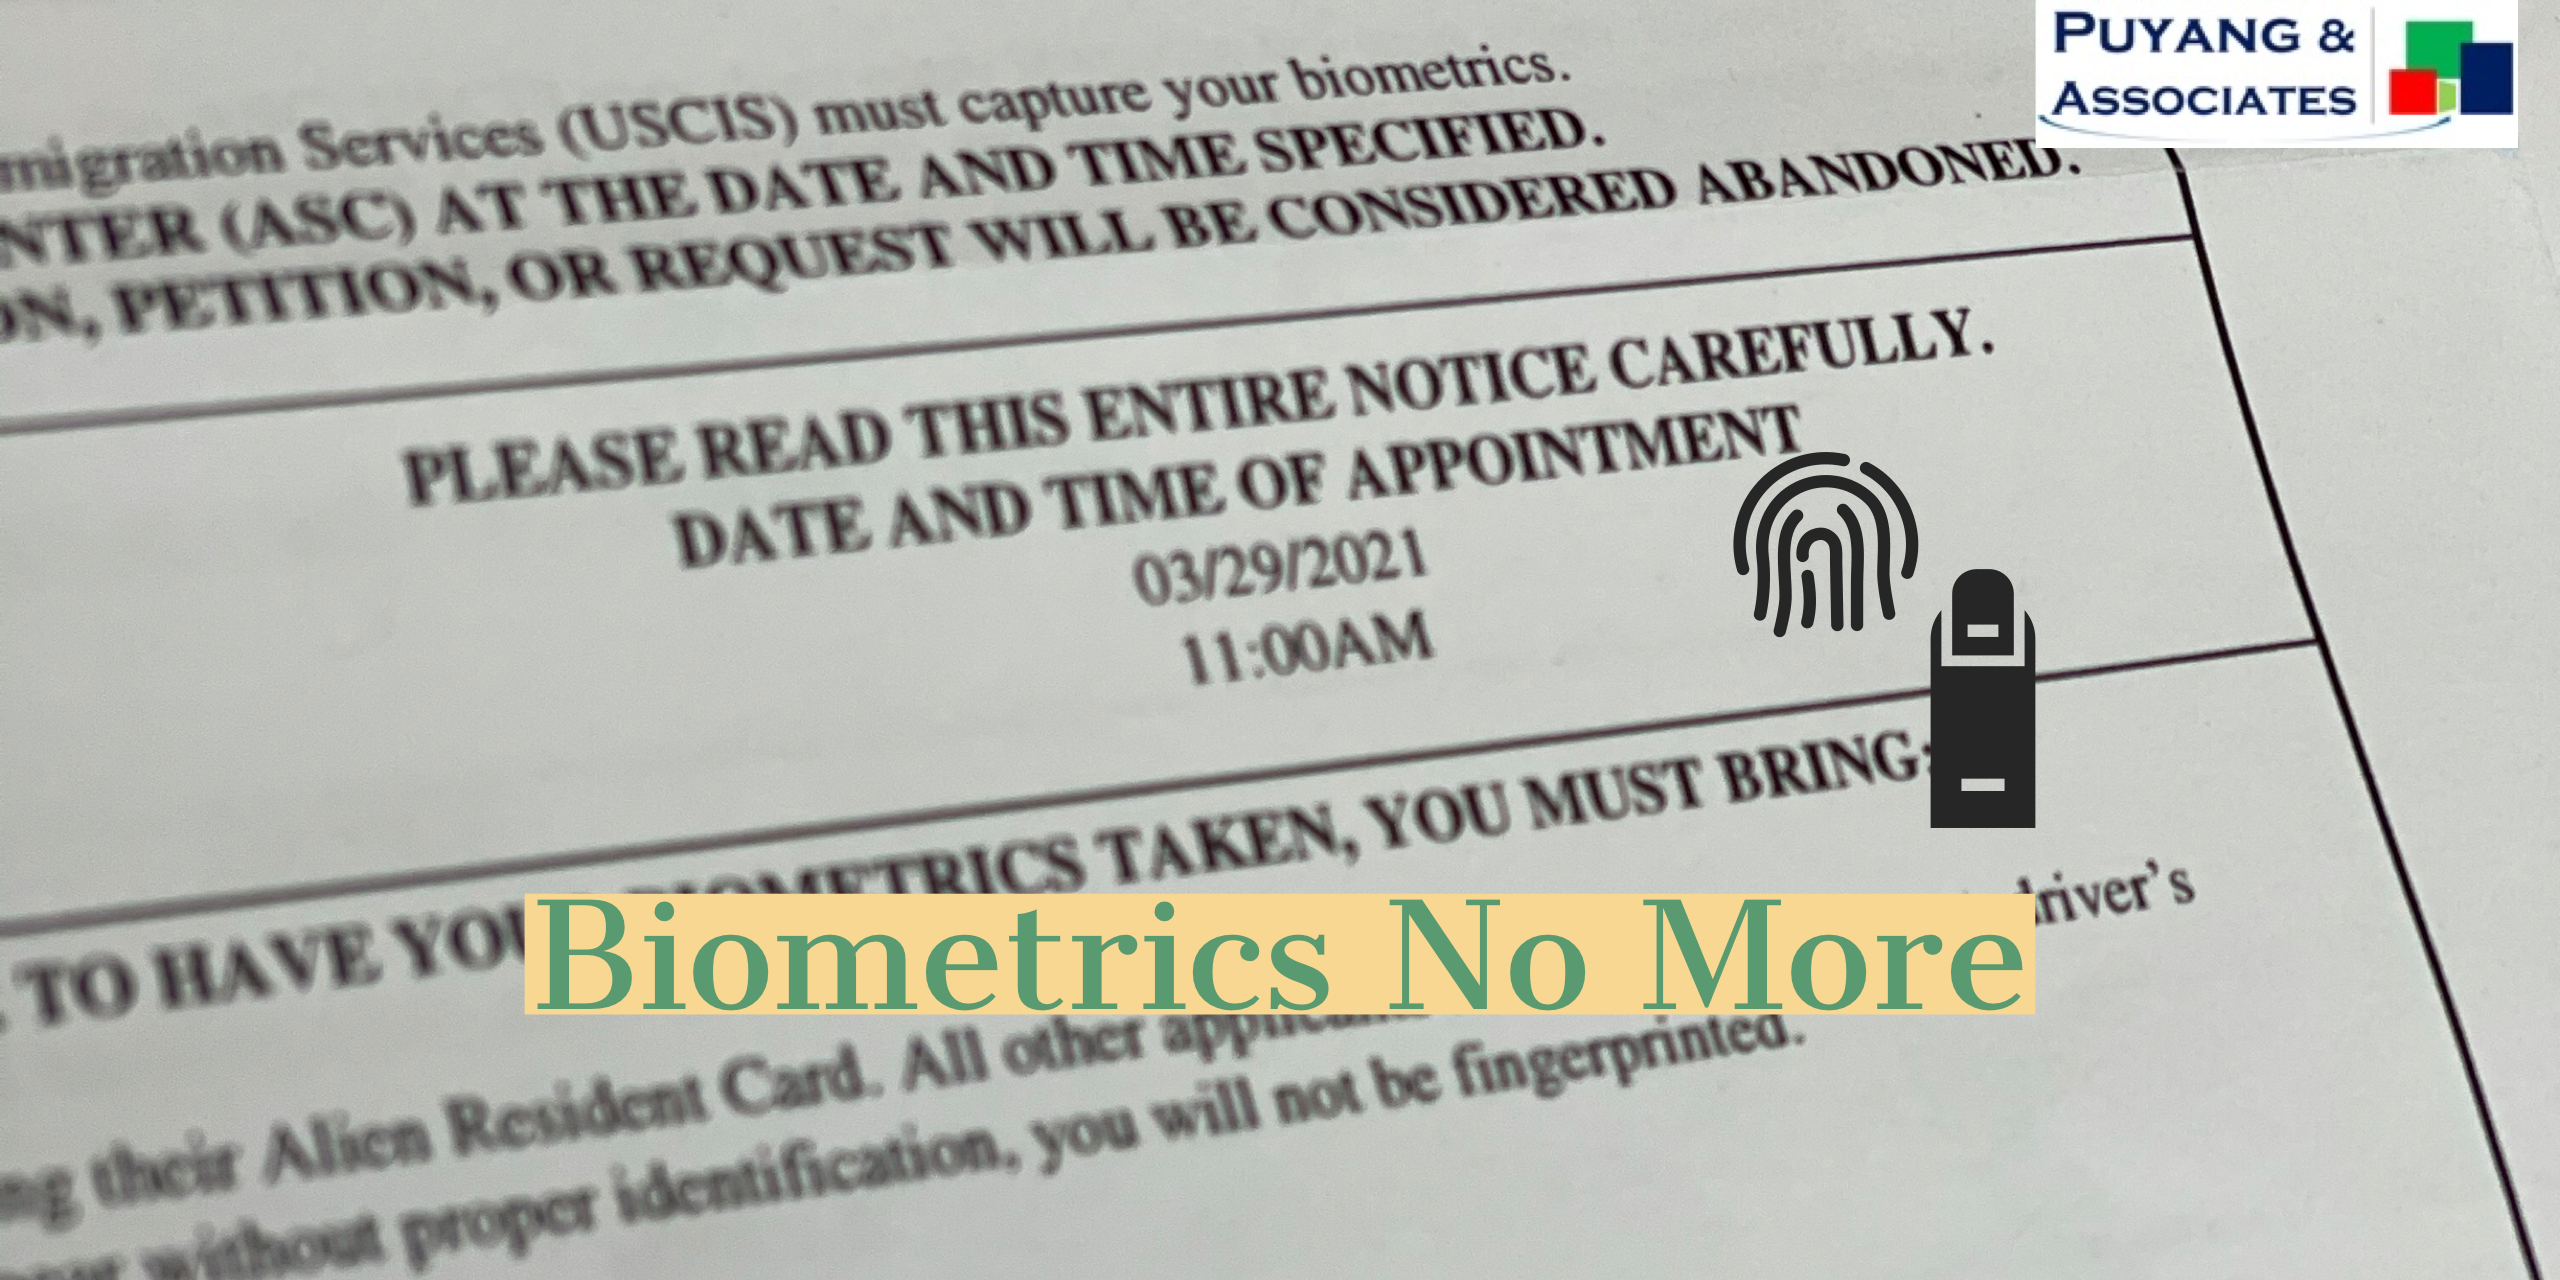 Breaking: USCIS to Eliminate Biometrics Requirement for I-539 filers starting May 17, 2021